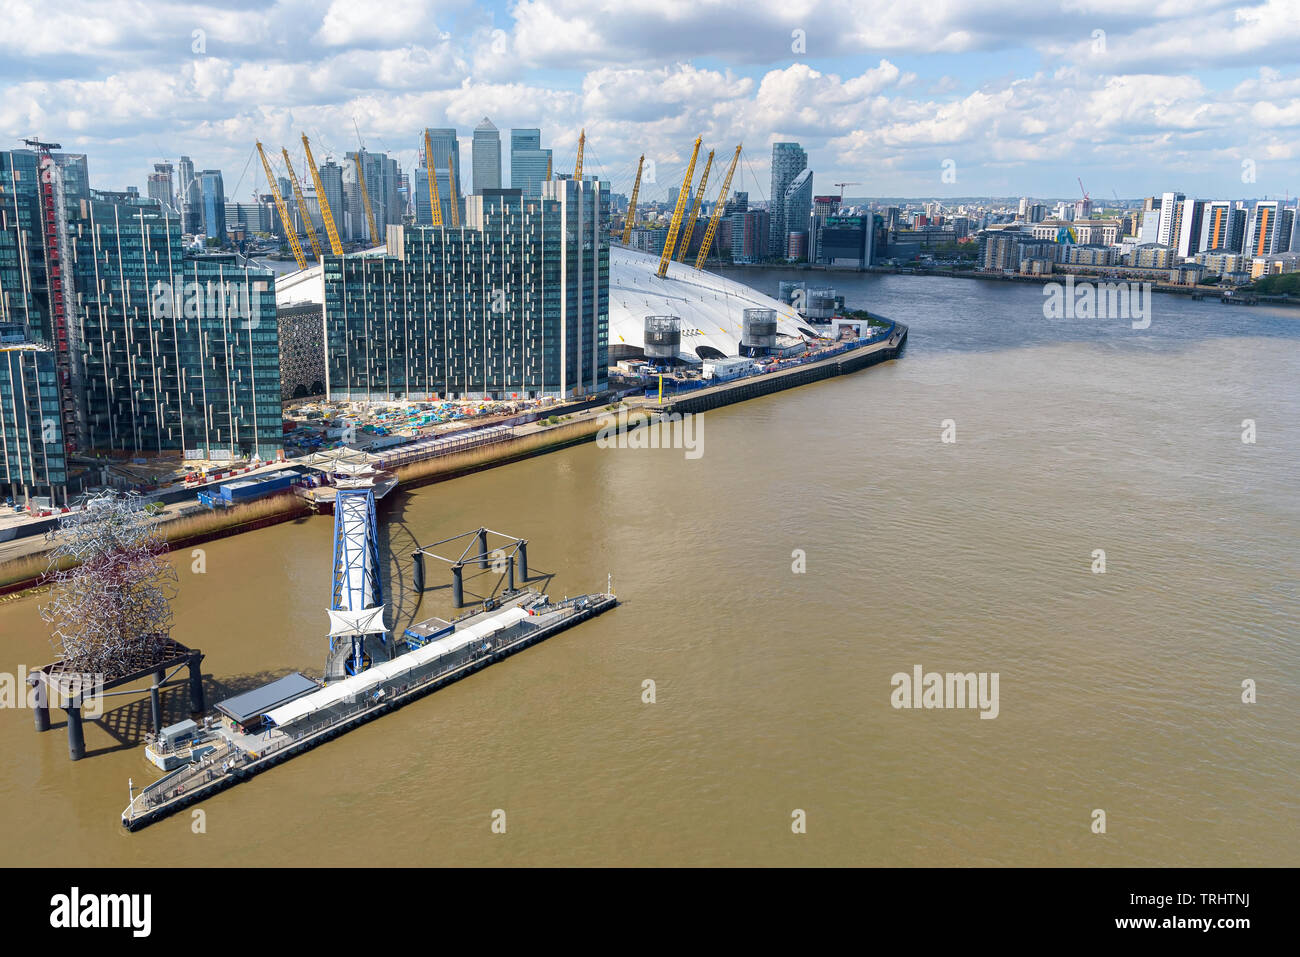 Aerial view of Thames River and Greenwich Peninsula in London, UK - Stock Image